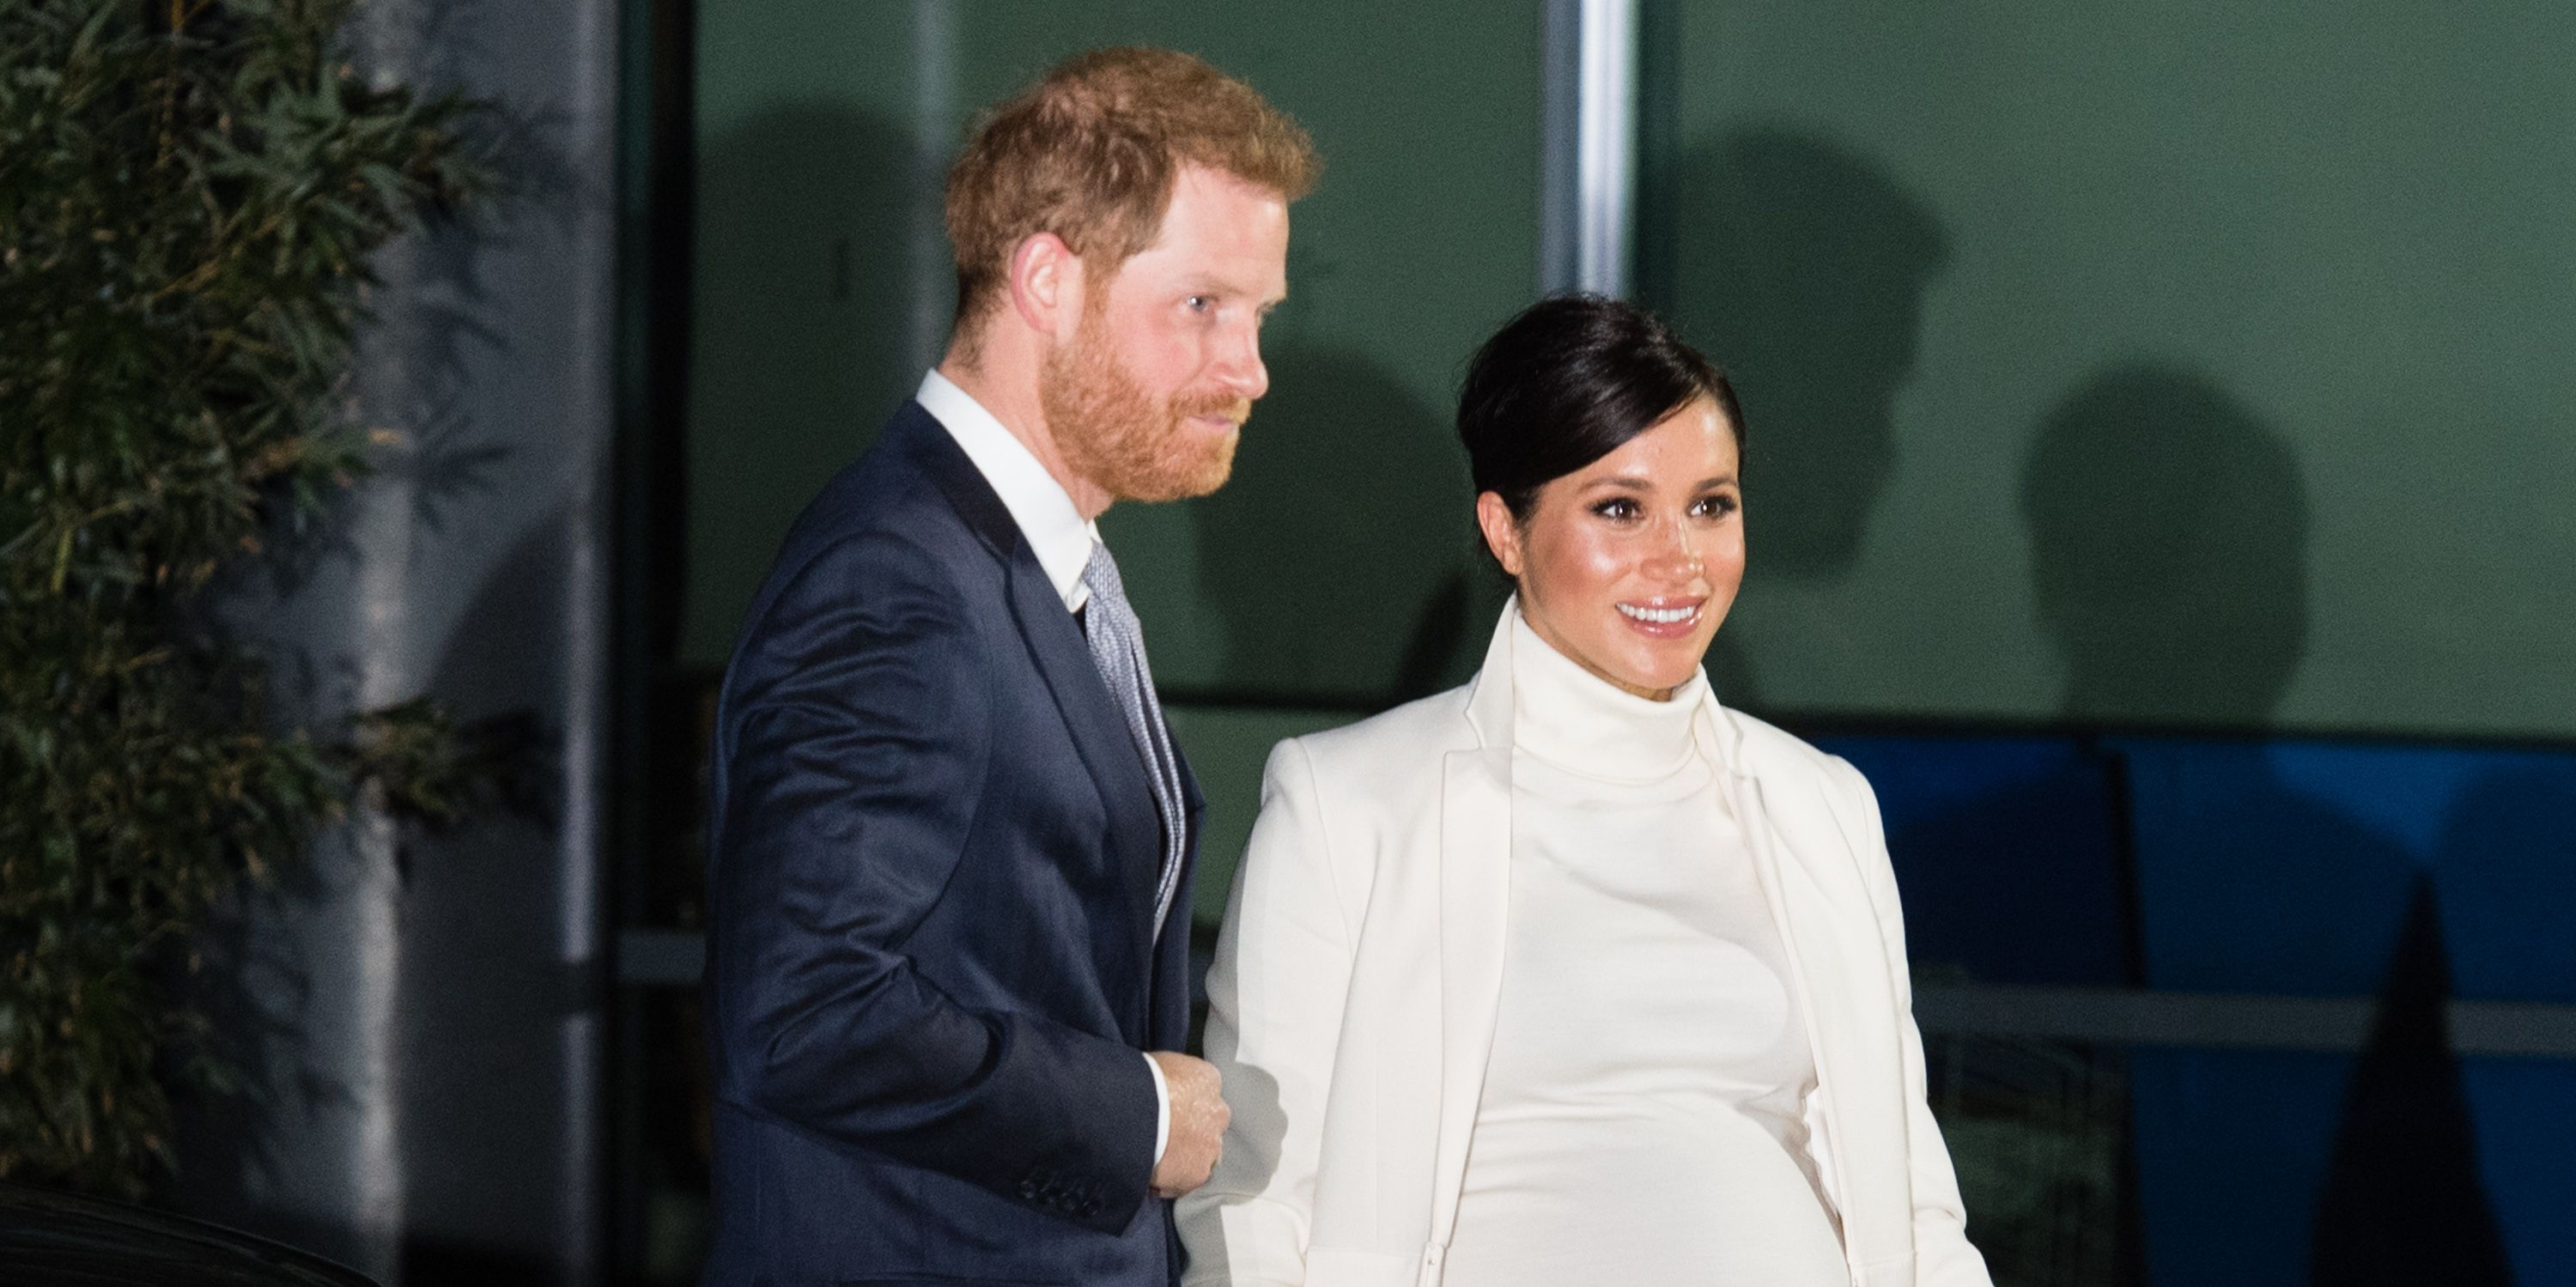 14 Royal Baby Rules Meghan and Harry Have to Follow